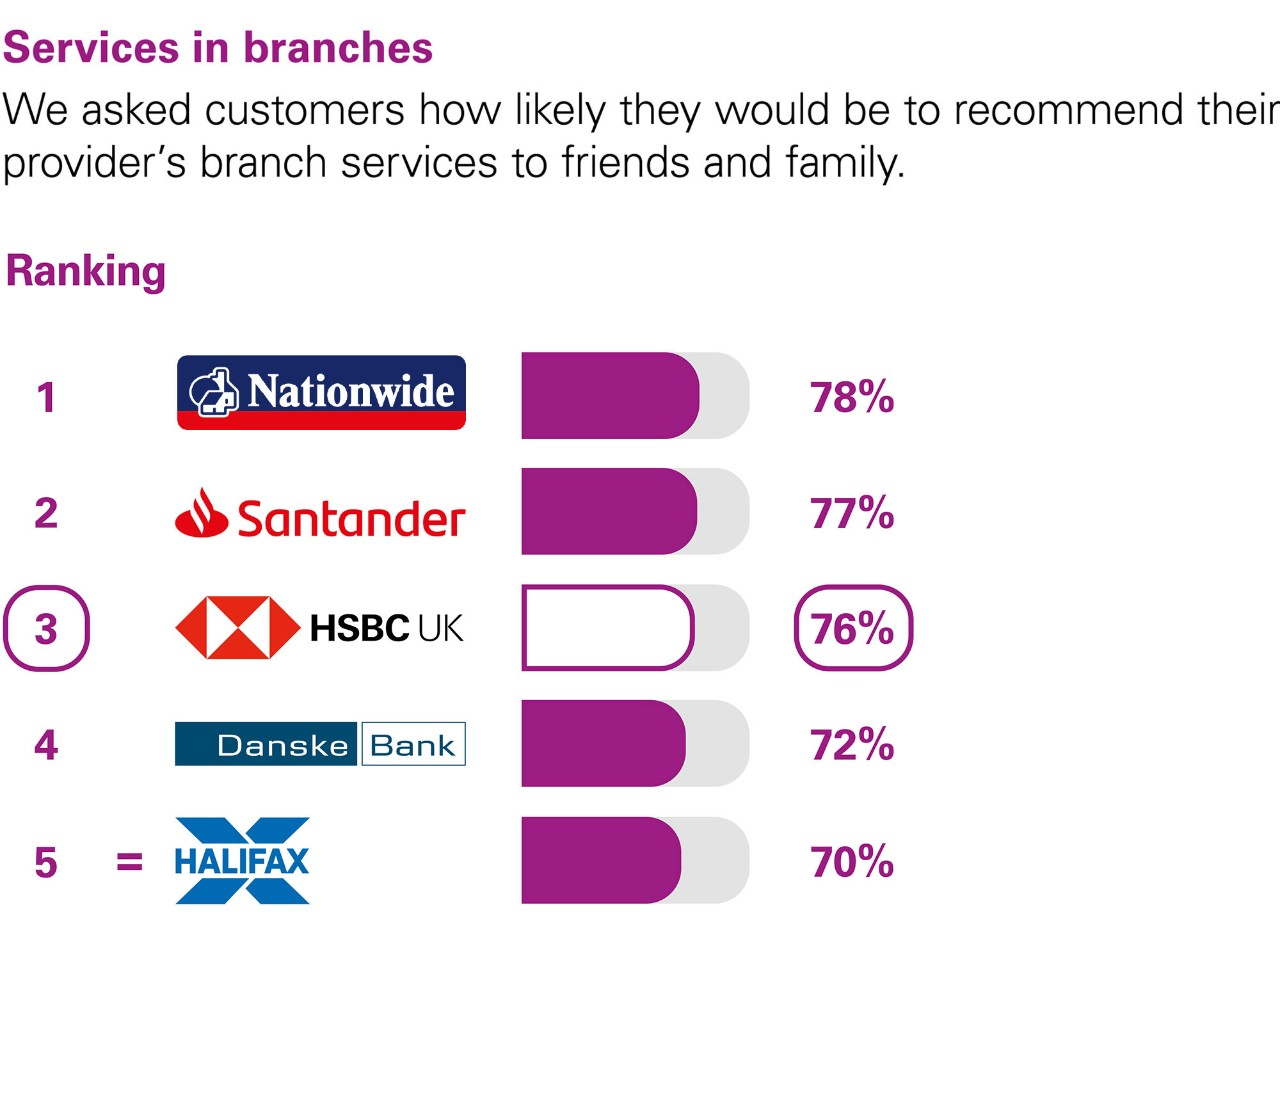 Services in branches. We asked customers how likely they would be to recommend their provider's branch services to friends and family. Ranking: 1 Nationwide 78%. 2 Santander 77%. 3 HSBC UK 76%. 4 Danske Bank 72%. equal 5 Halifax 70%.